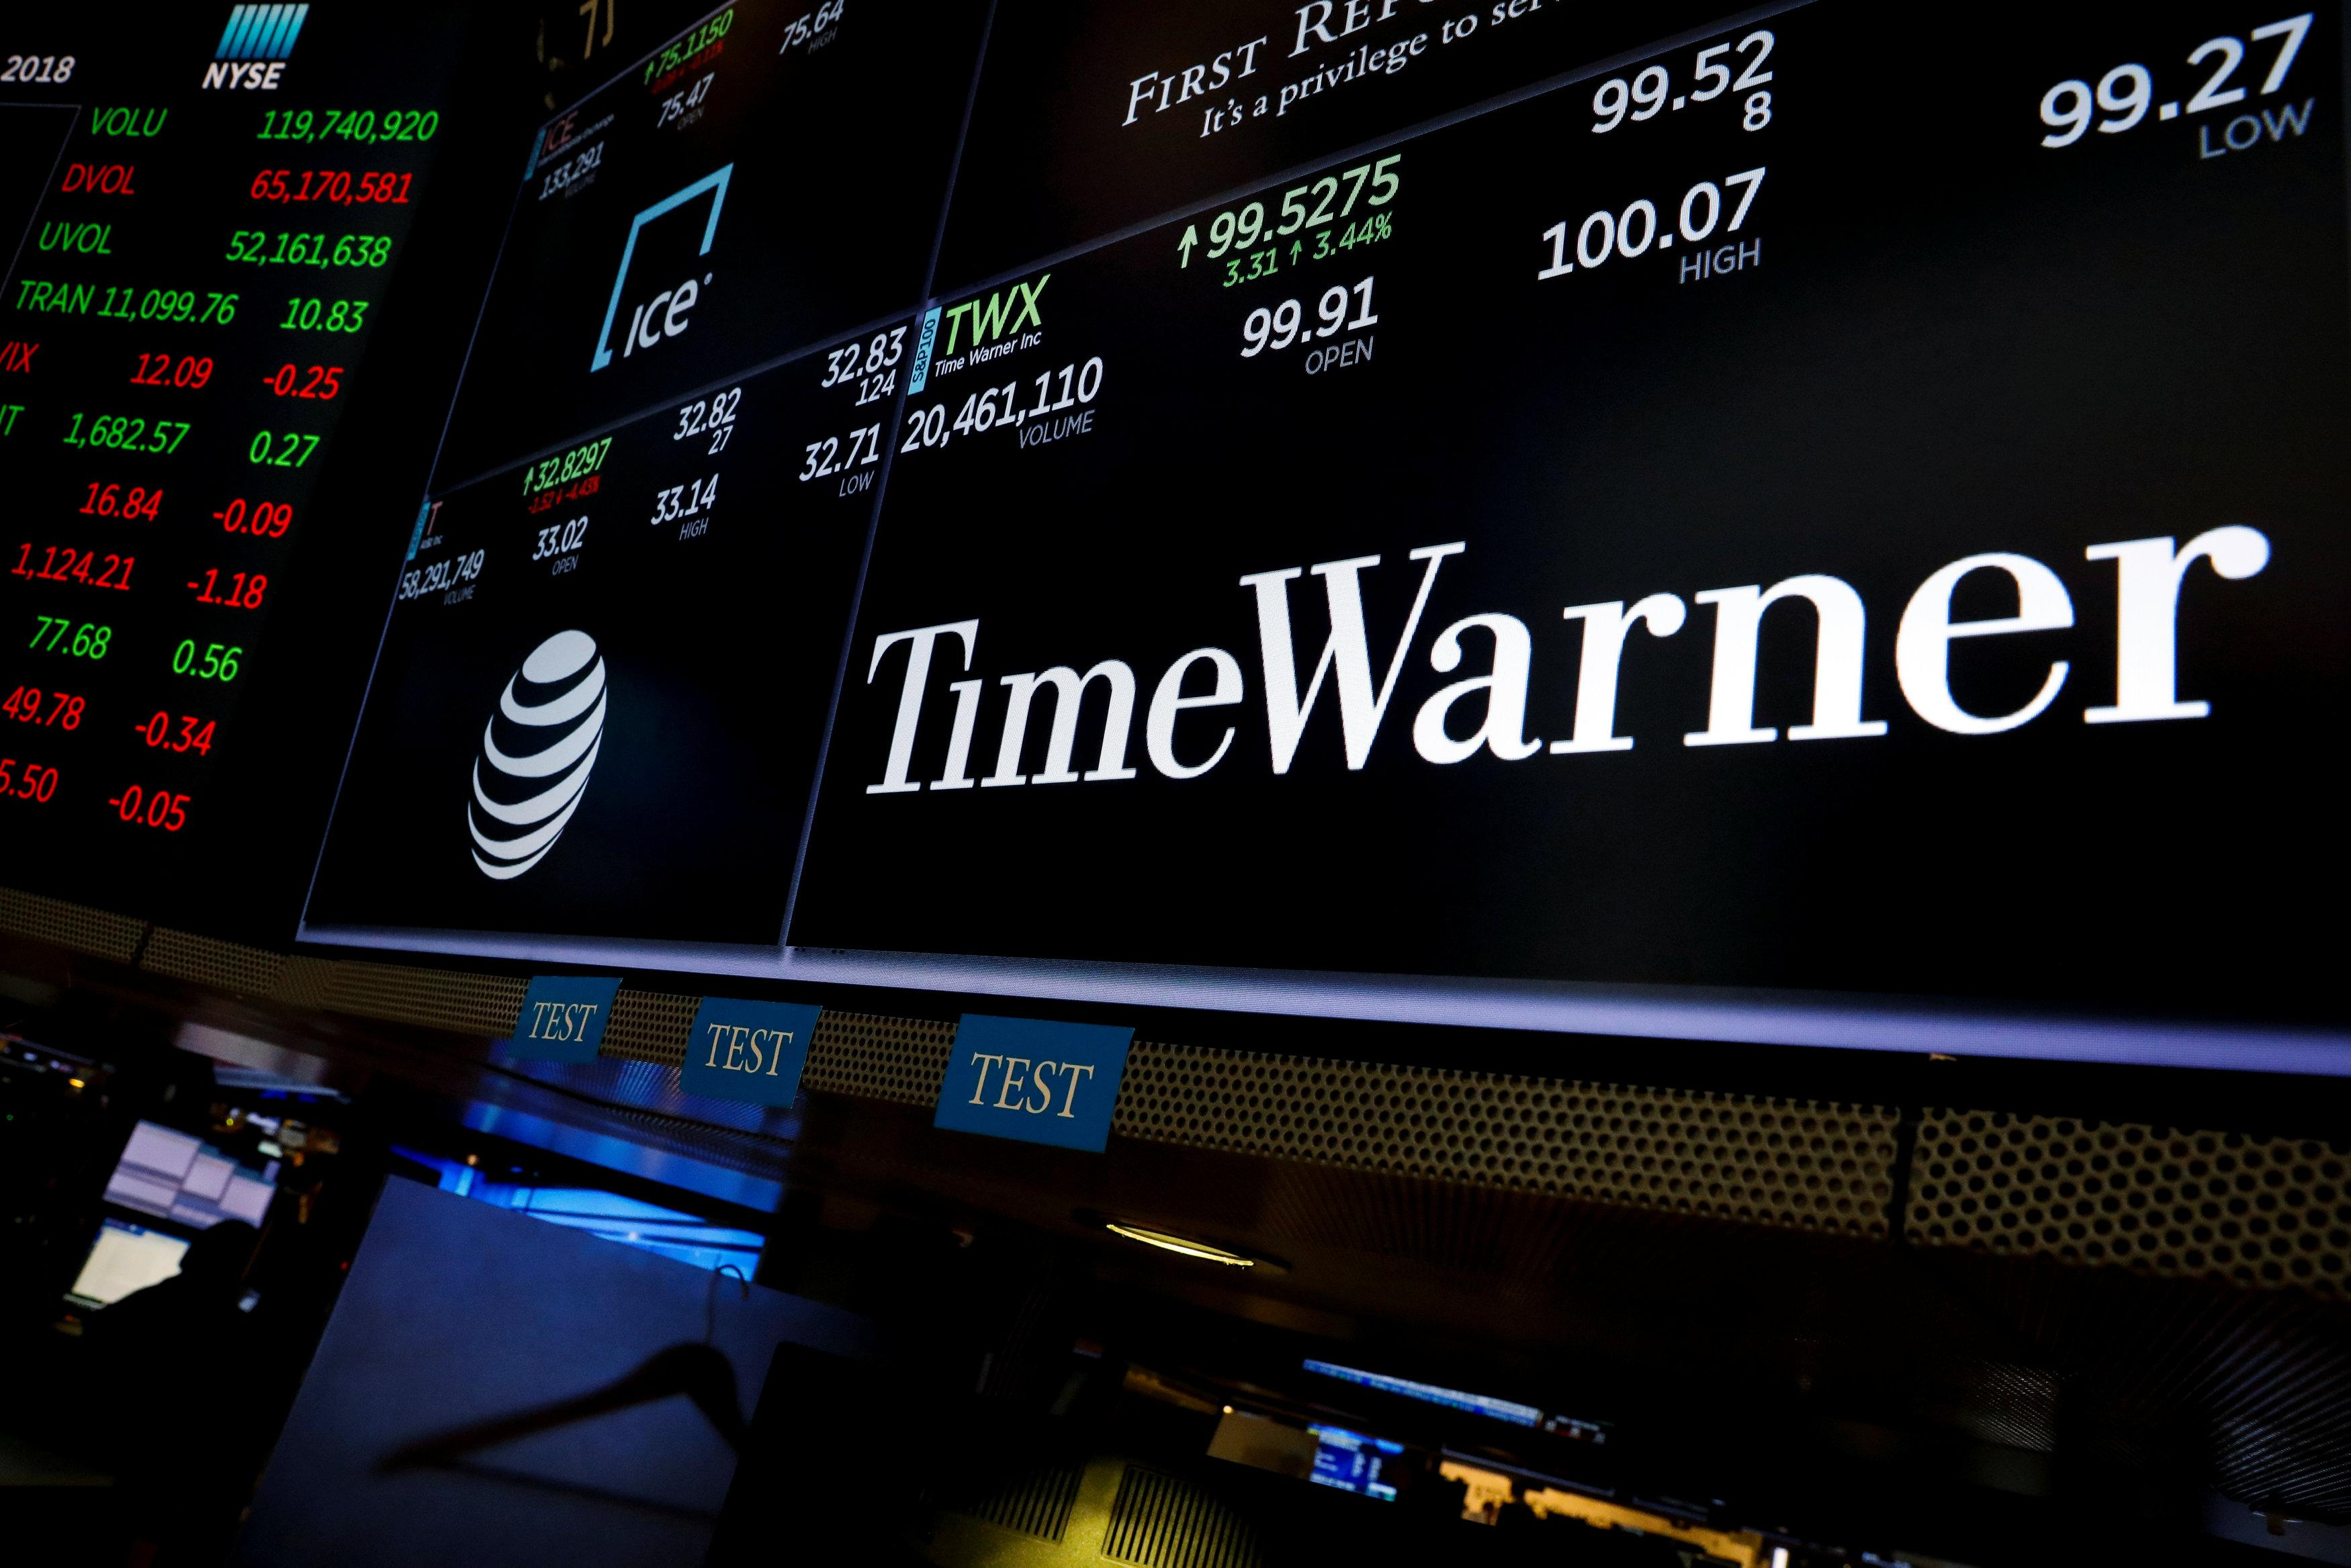 With Or Without Time Warner Att Stock Isnt Worth Buying